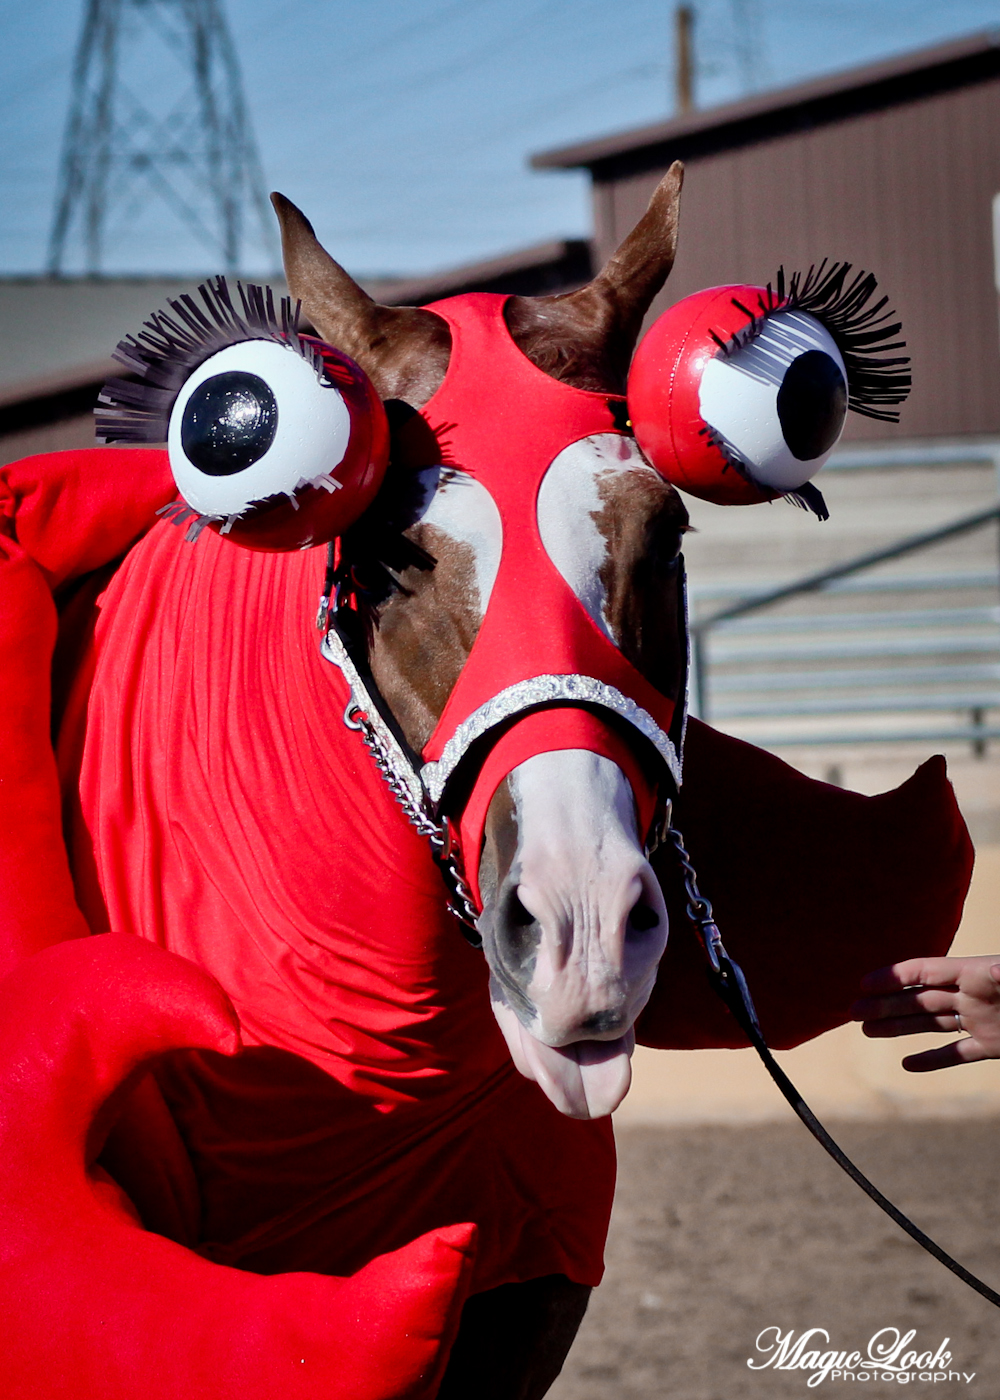 Competitors Clothed In Creative Costumes For Charity Equine Chronicle